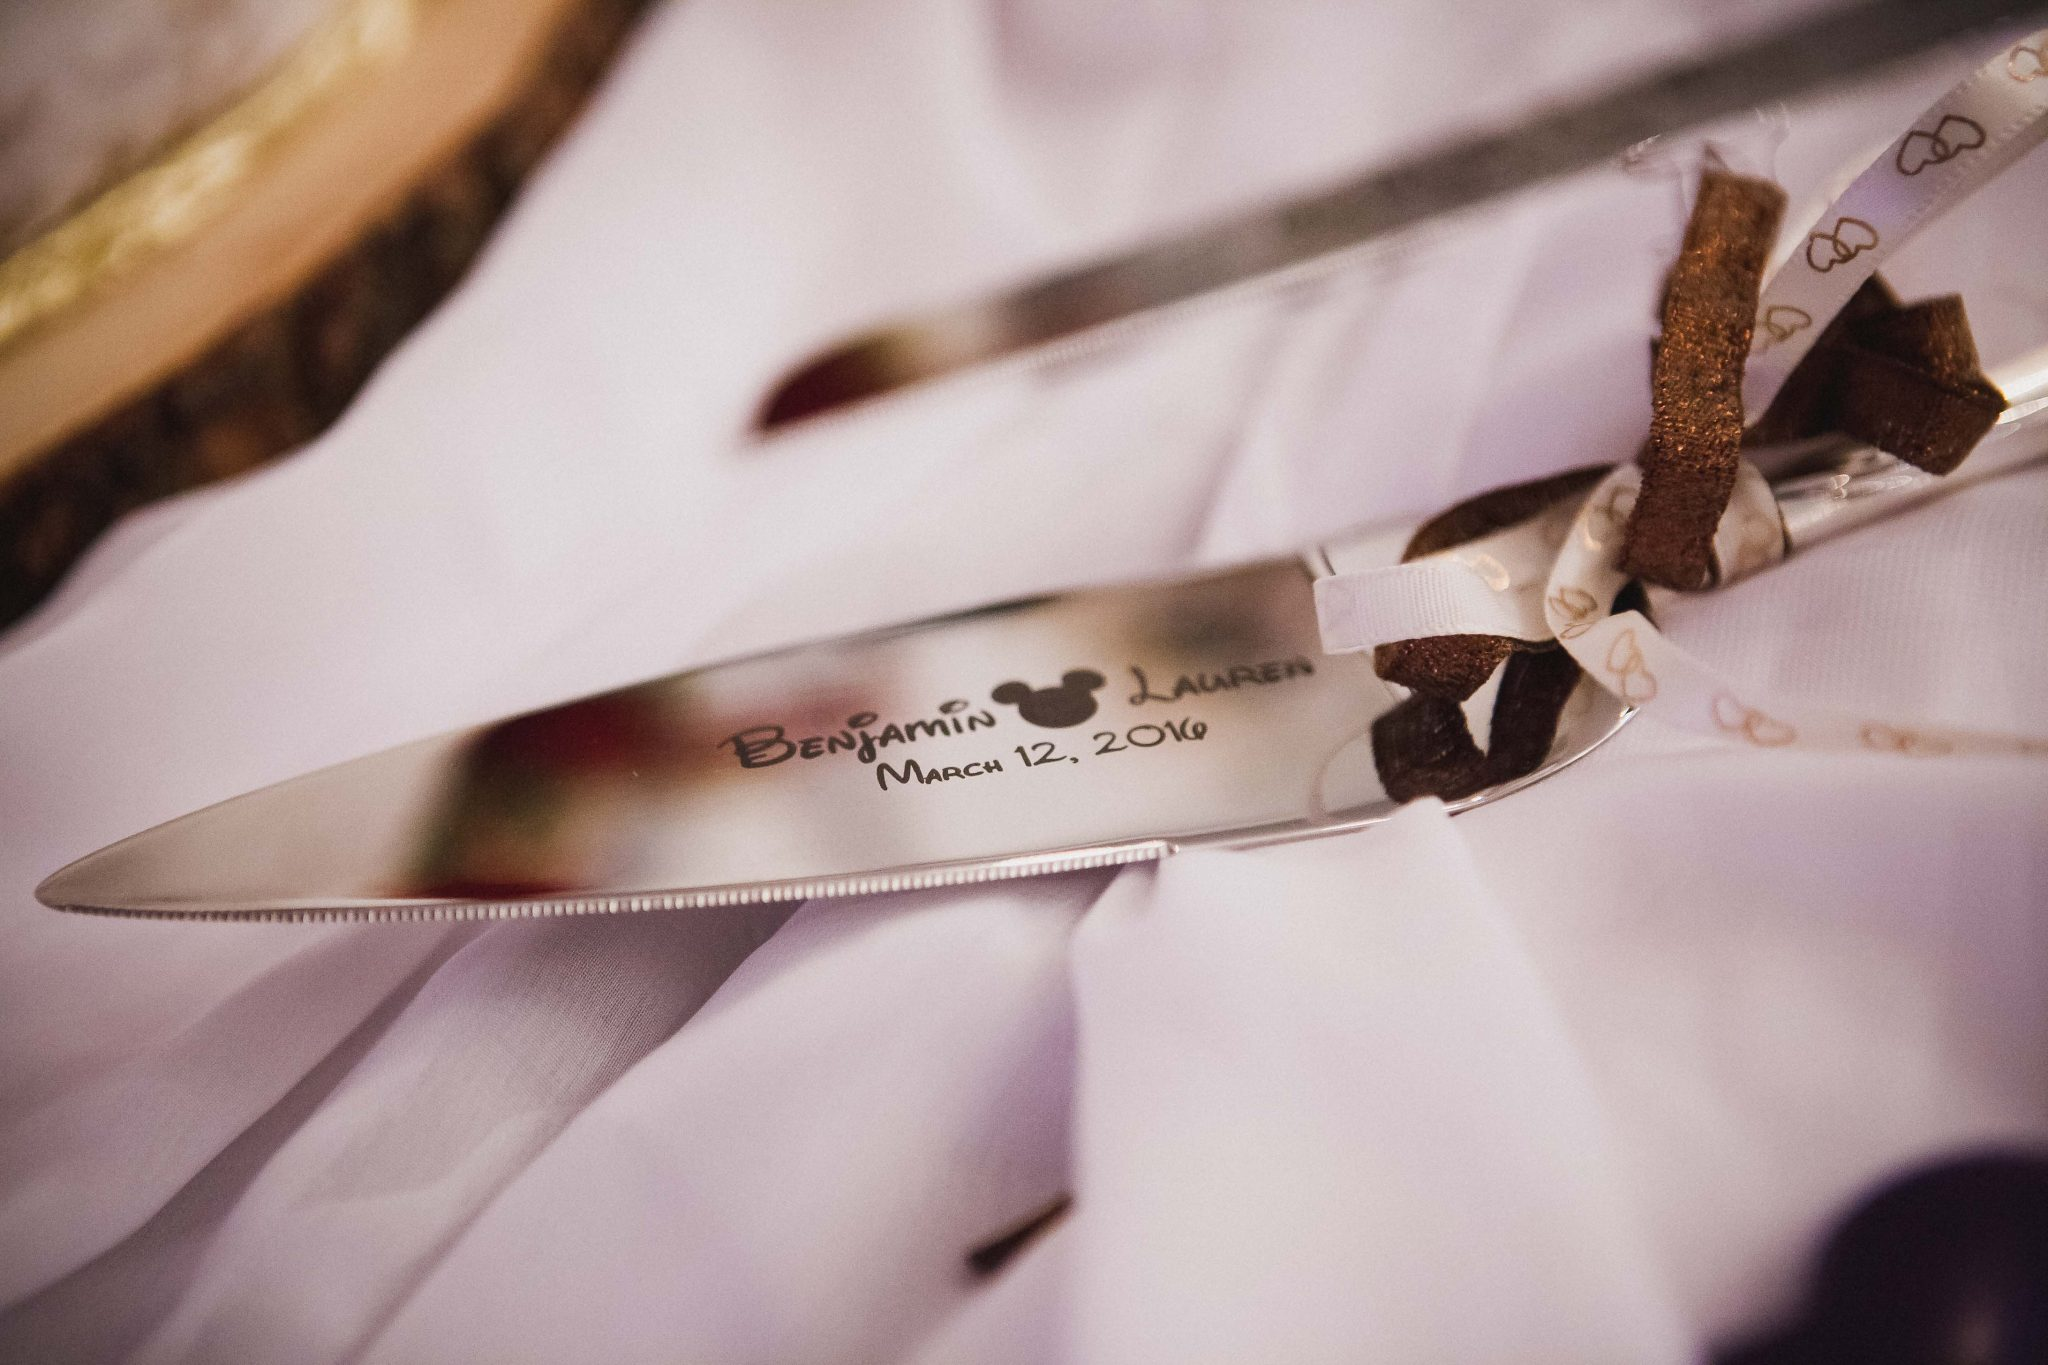 Engraved cake cutting knife for the bride and groom